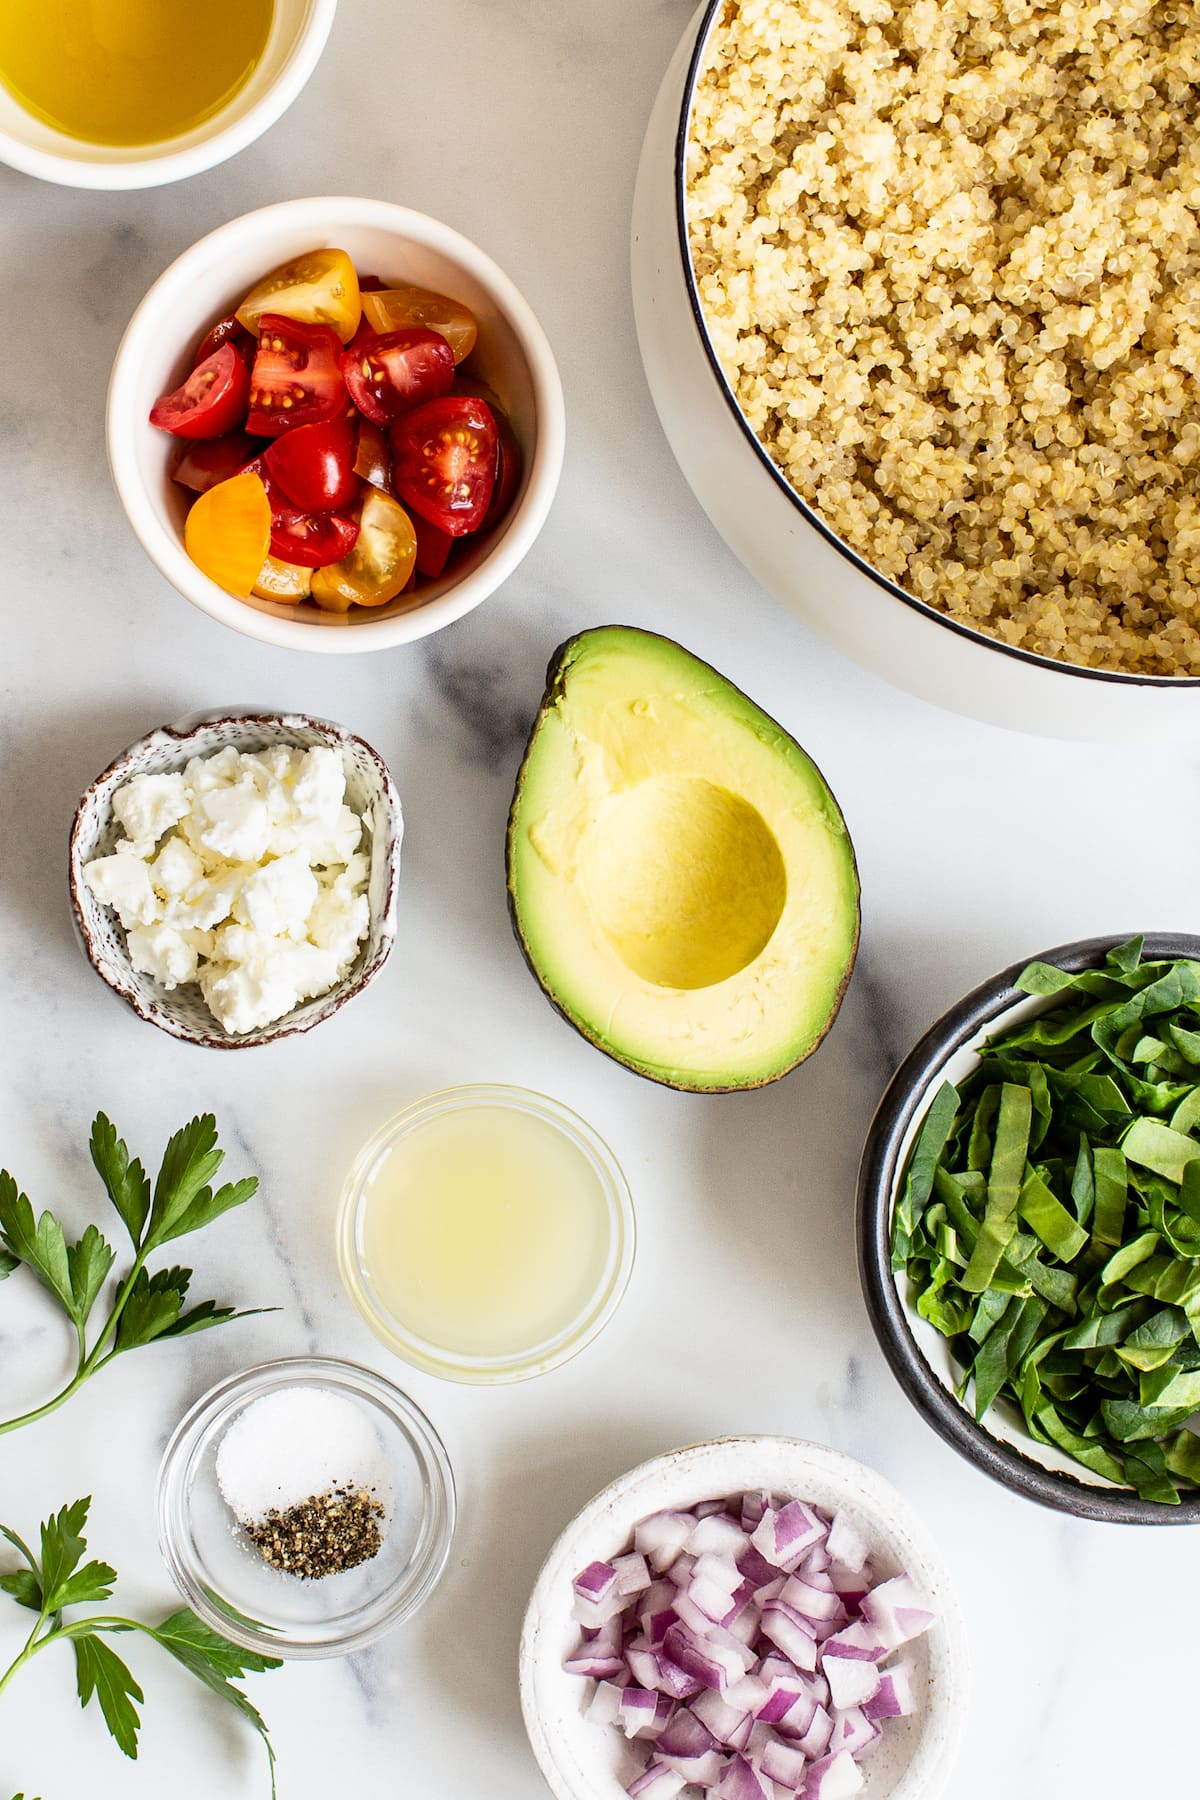 Quinoa, tomatoes, avocado, feta, spinach, lemon juice, spices and red onion measured out in bowls.